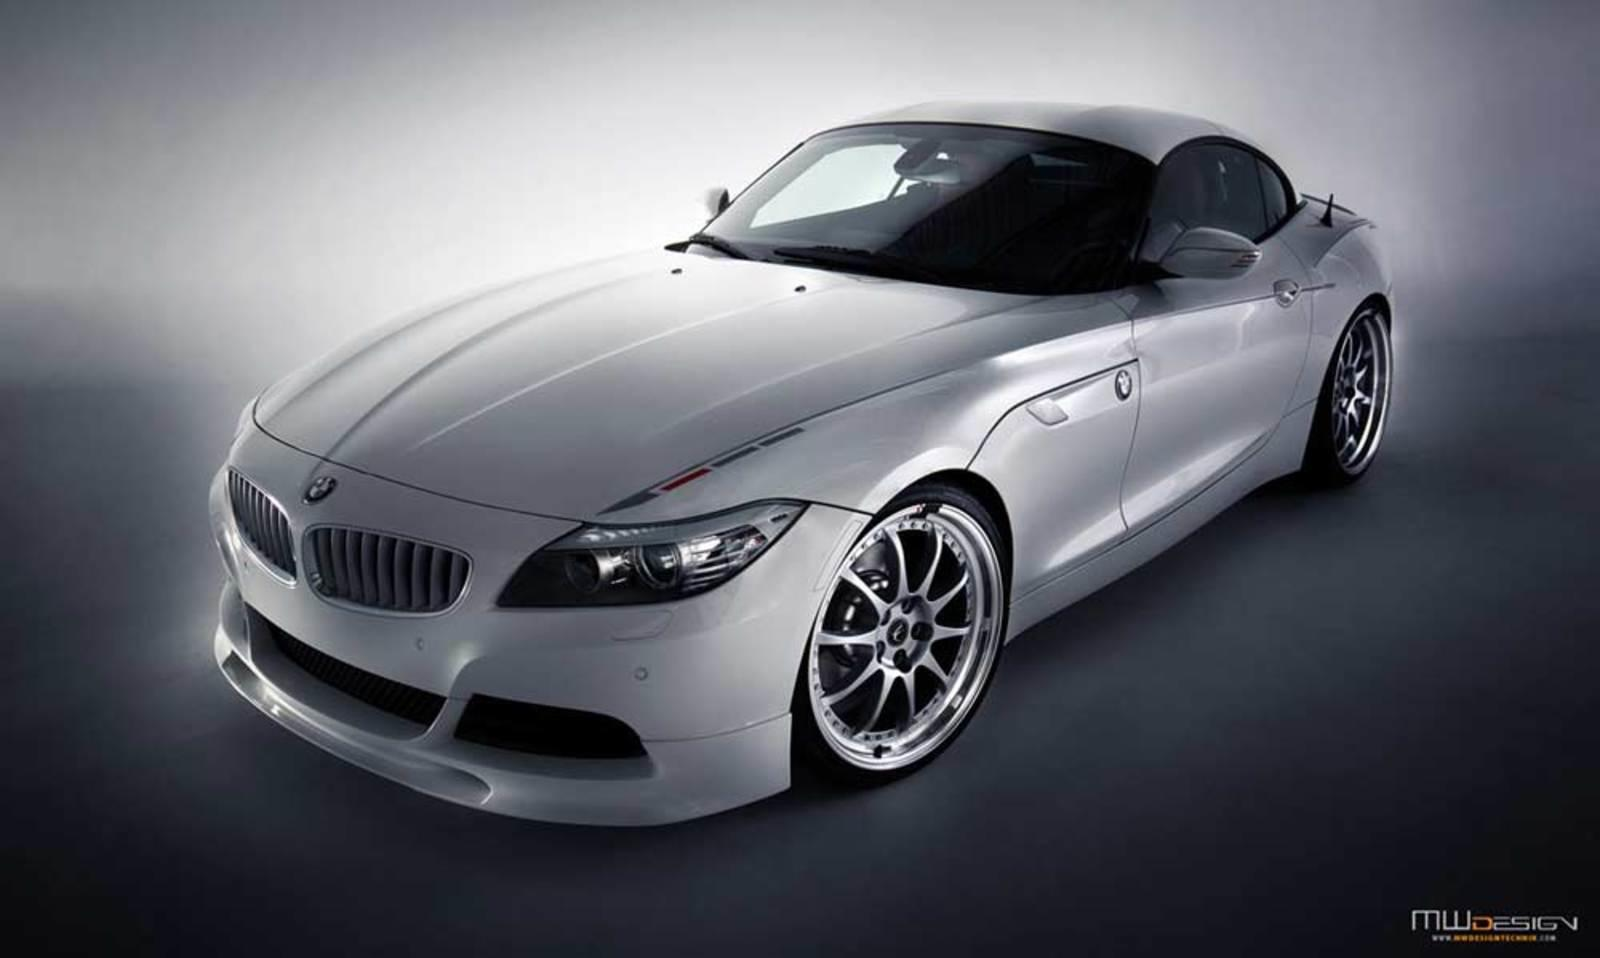 2011 Bmw Z4 White Flame By Mwdesign Review Top Speed